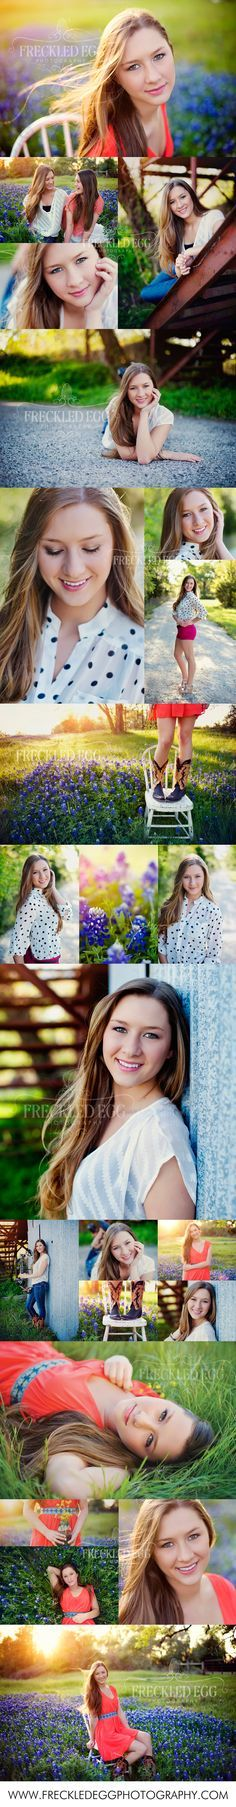 texas senior in the bluebonnets by the freckled egg photography